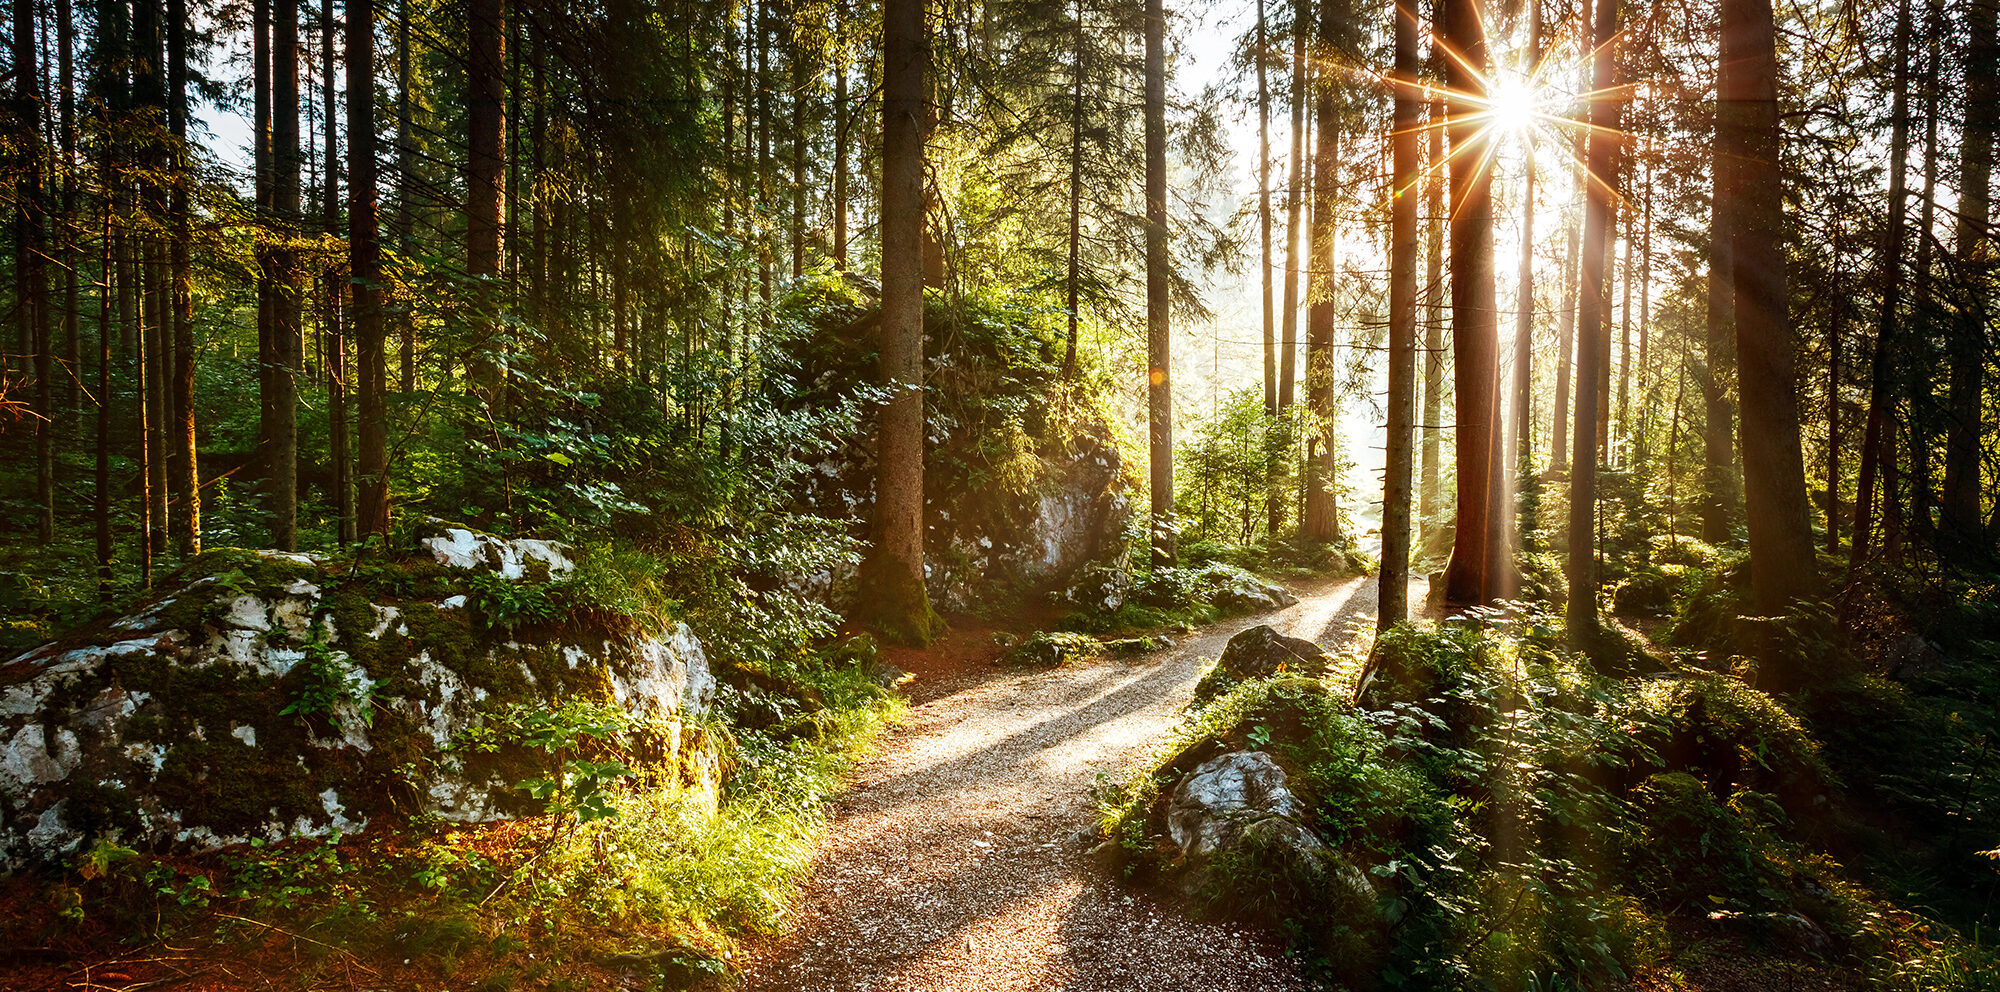 Trail in forest during sunrise